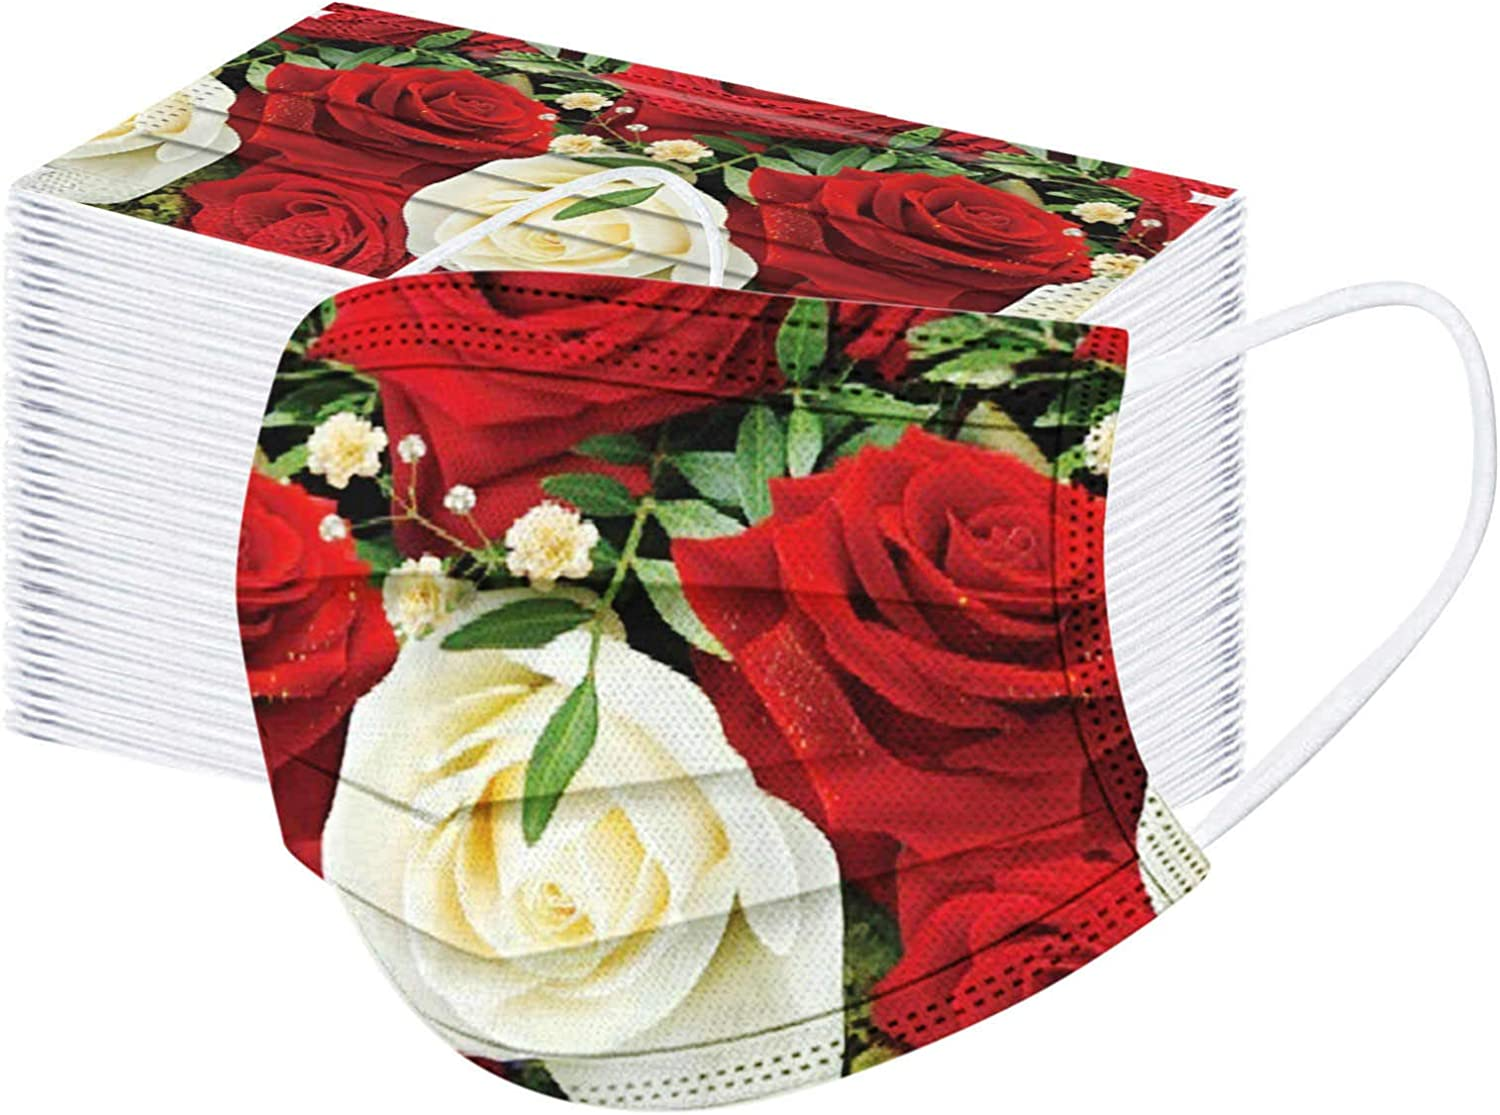 100 Pcs Floral Print Rose for sale Disposable_Face_Mask Women Adults Limited Special Price